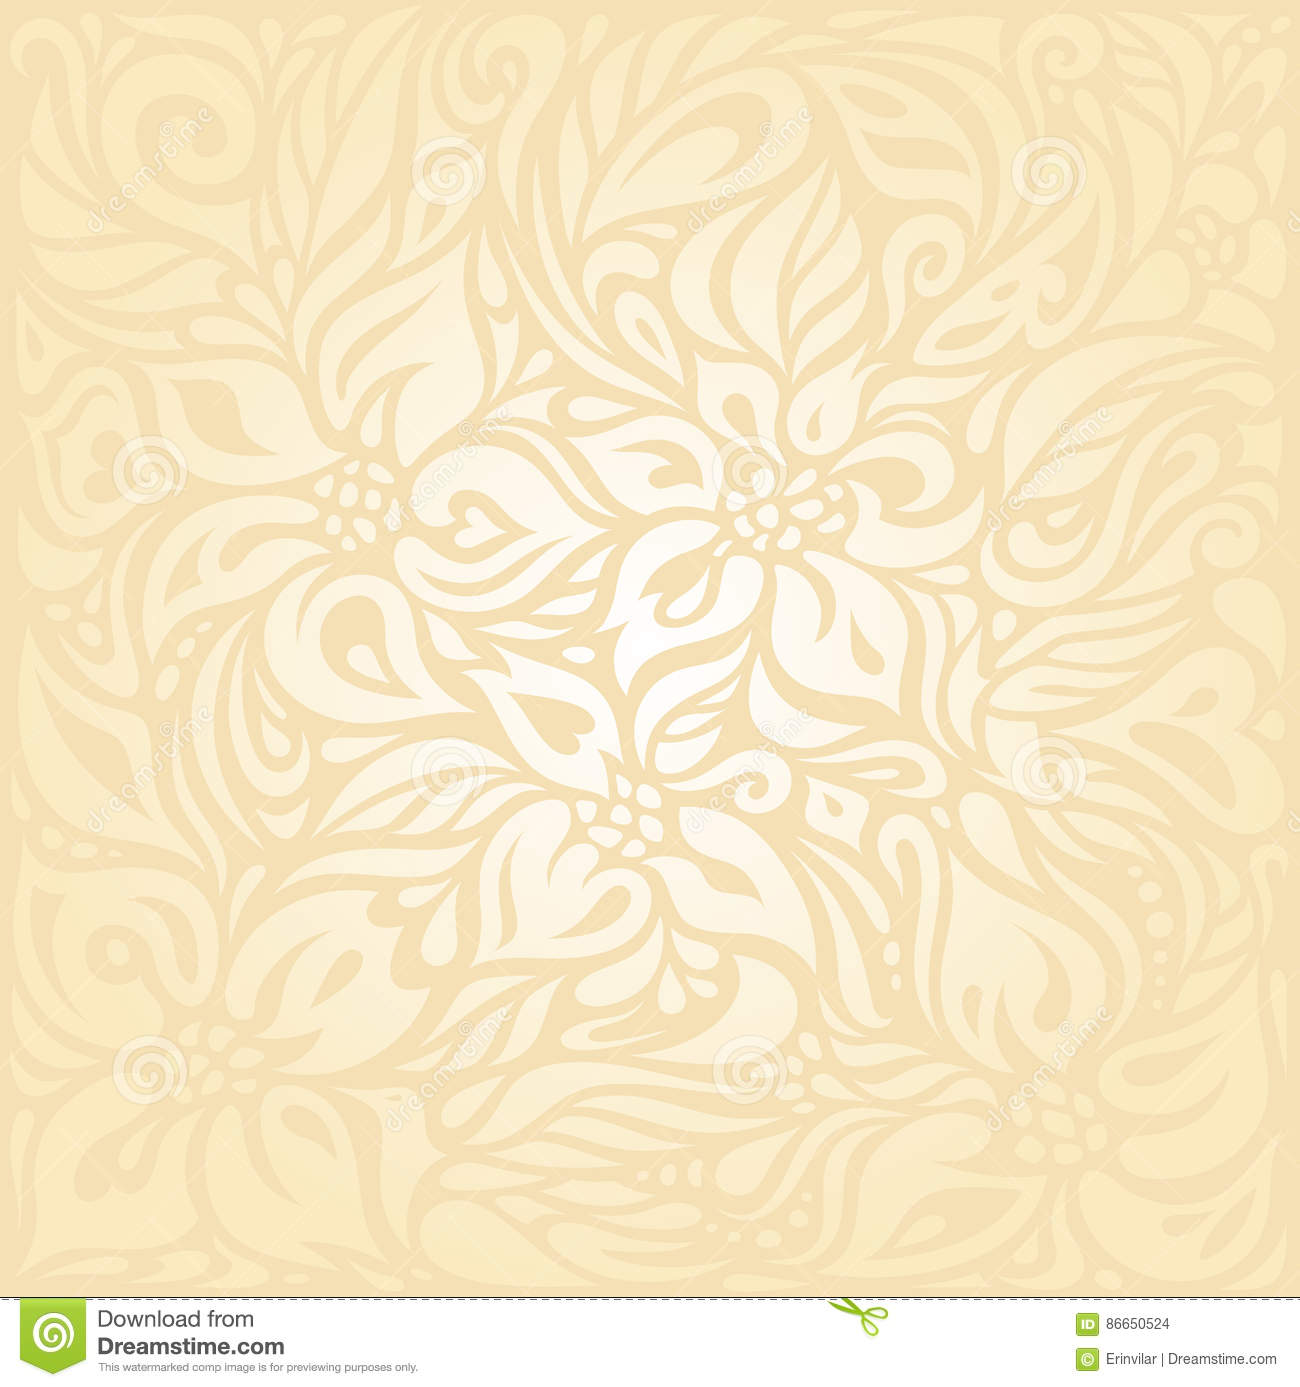 Floral Retro Wedding Peach Invitation Background Design